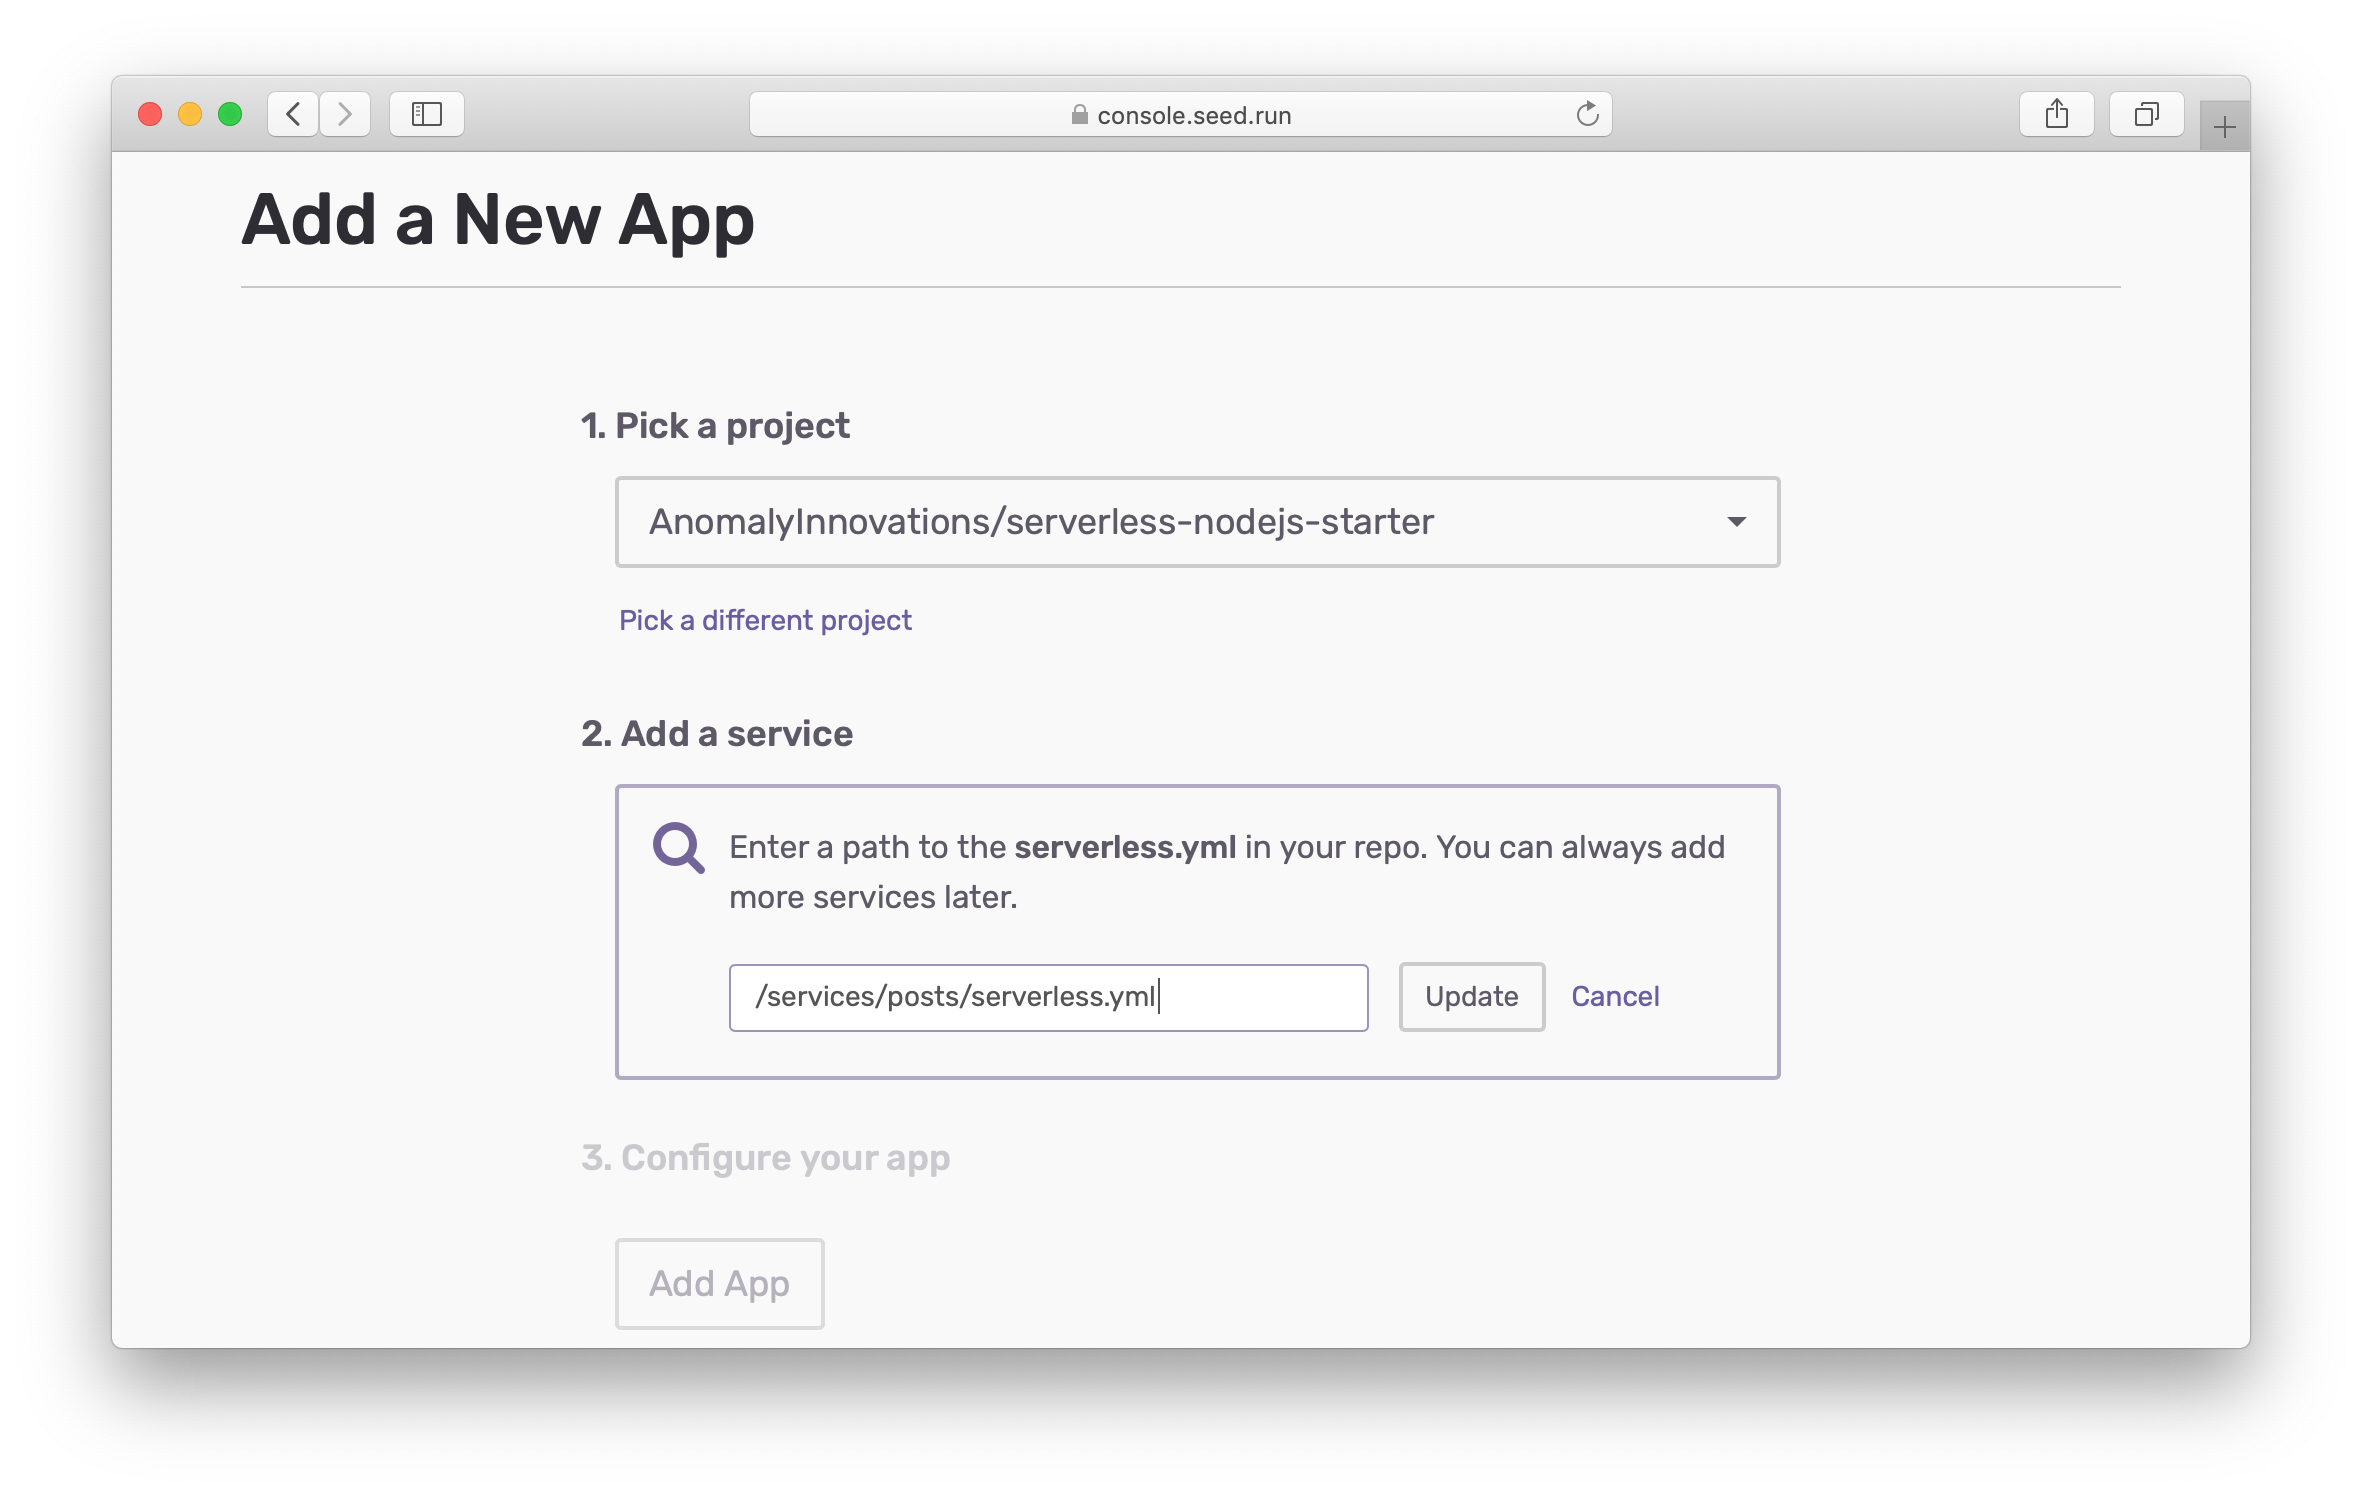 Pick different default service for new app